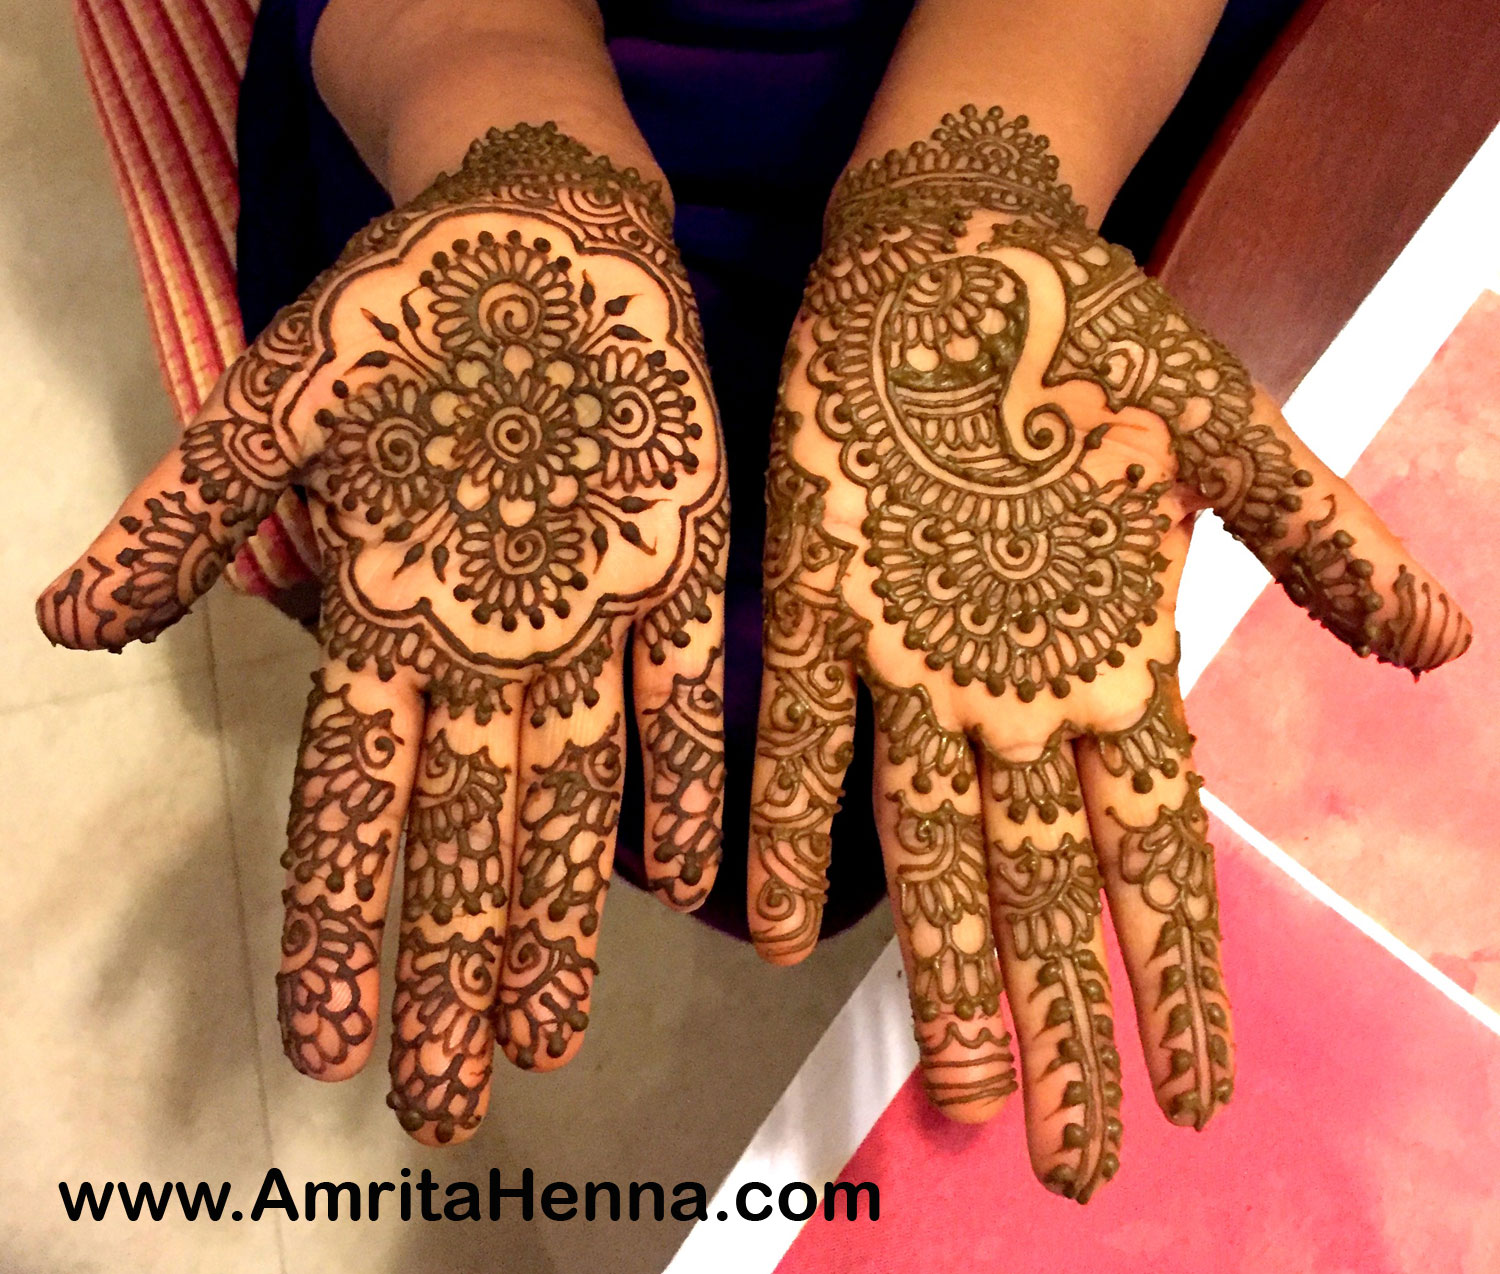 Top 10 Henna Designs for the Mother of the Bride - Top 10 Best Mehndi Designs for the Brides Mom - Most Popular 10 Full Hand Mehendi Designs for Dulhans Mother - Top 10 Henna Mehndi Mehendi Designs for your Daughters Wedding - 10 Best Mehandi Designs for the Mother of the Bride in Indian Wedding Ceremony - Top 10 Brides Mother Henna Designs